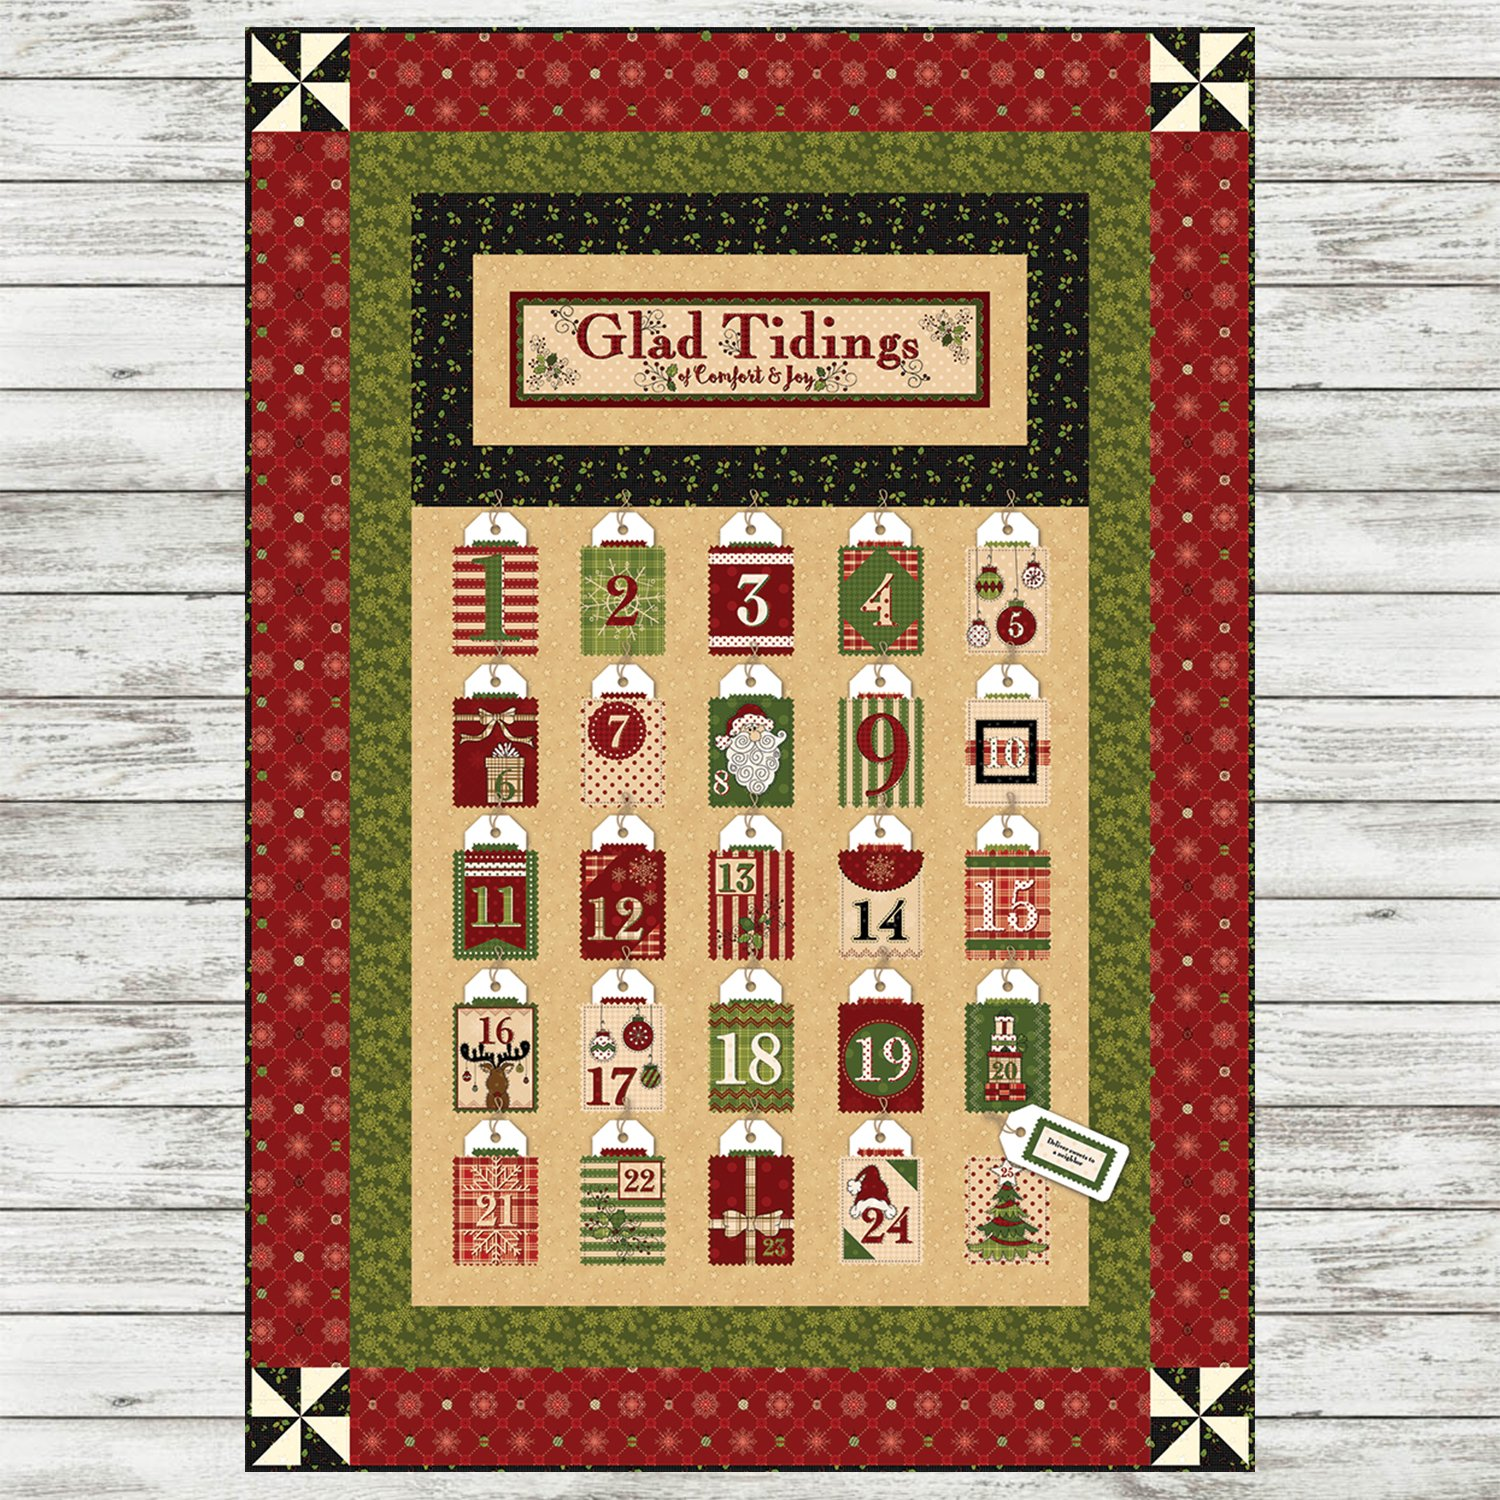 Glad Tidings Kits